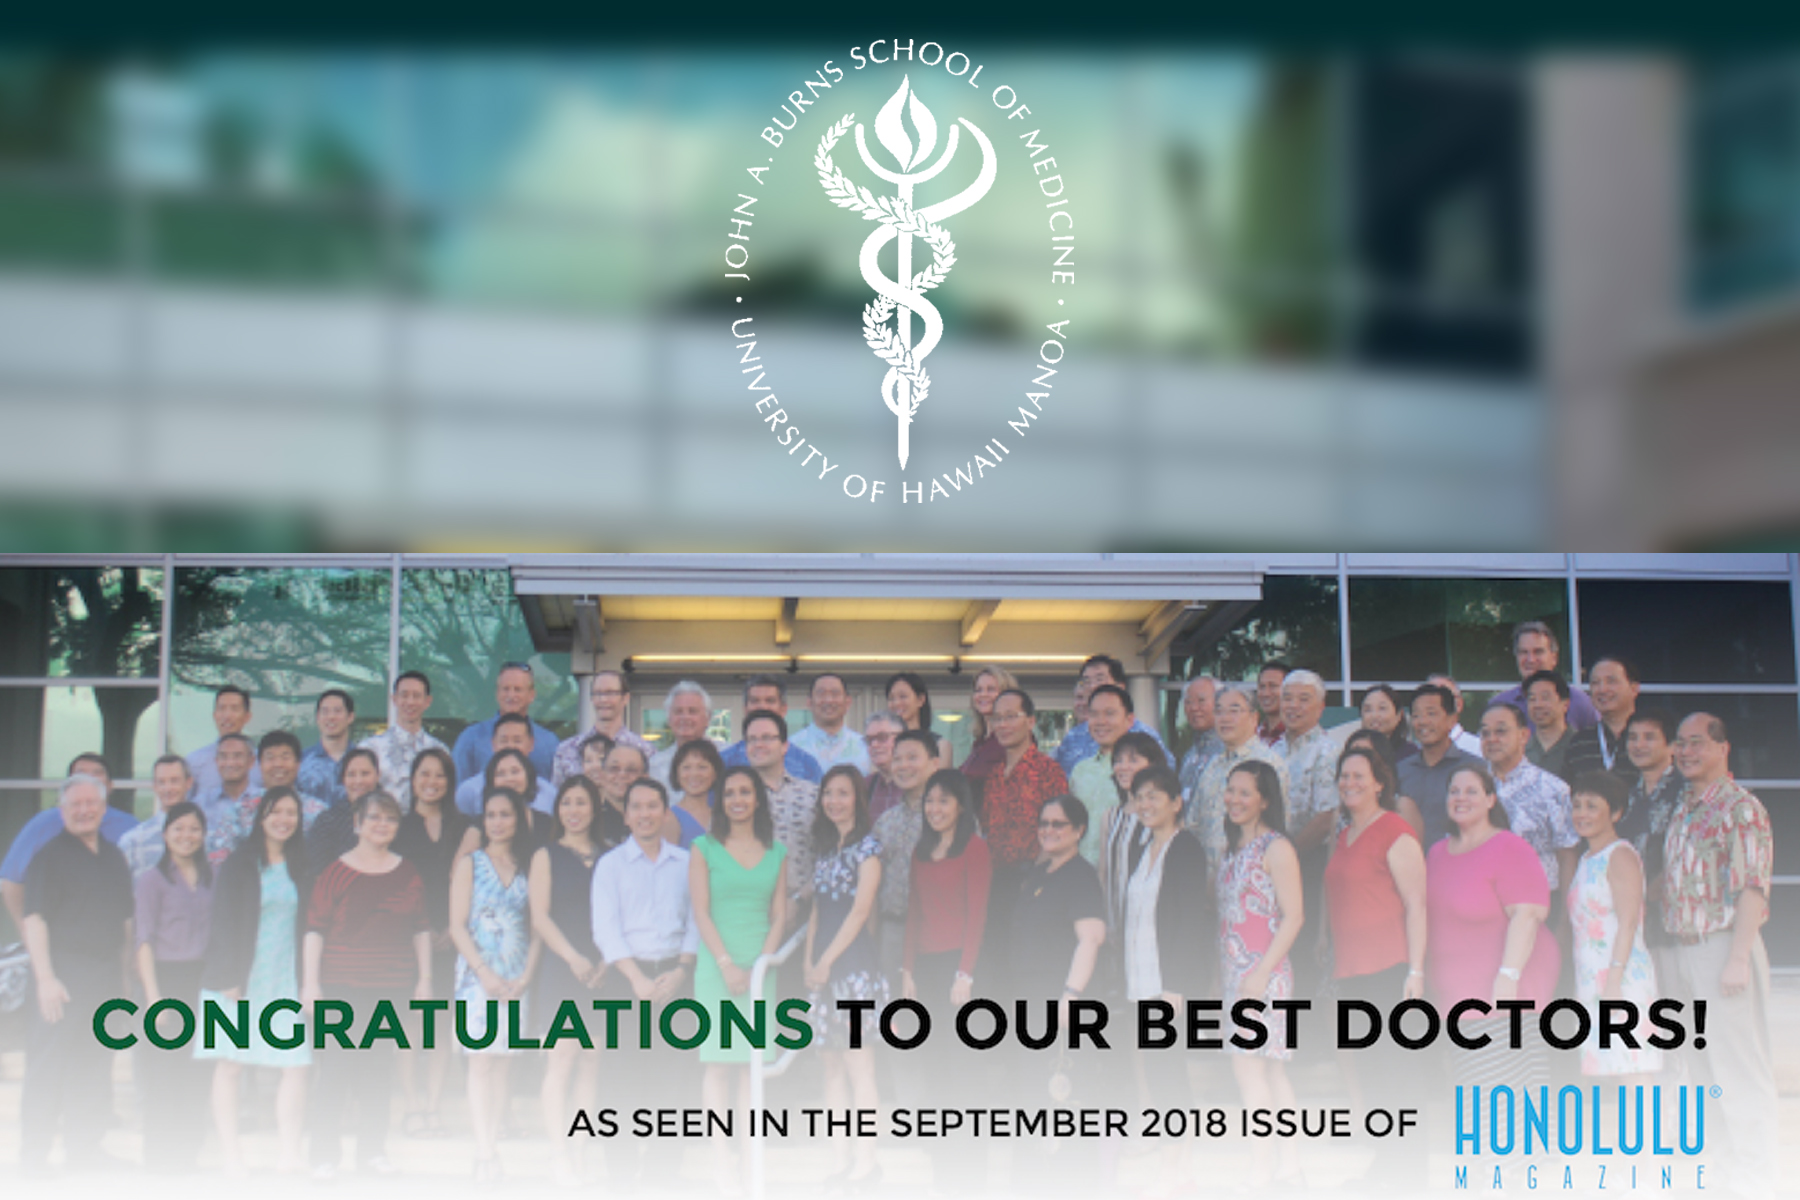 Top Docs 2018 a group photo